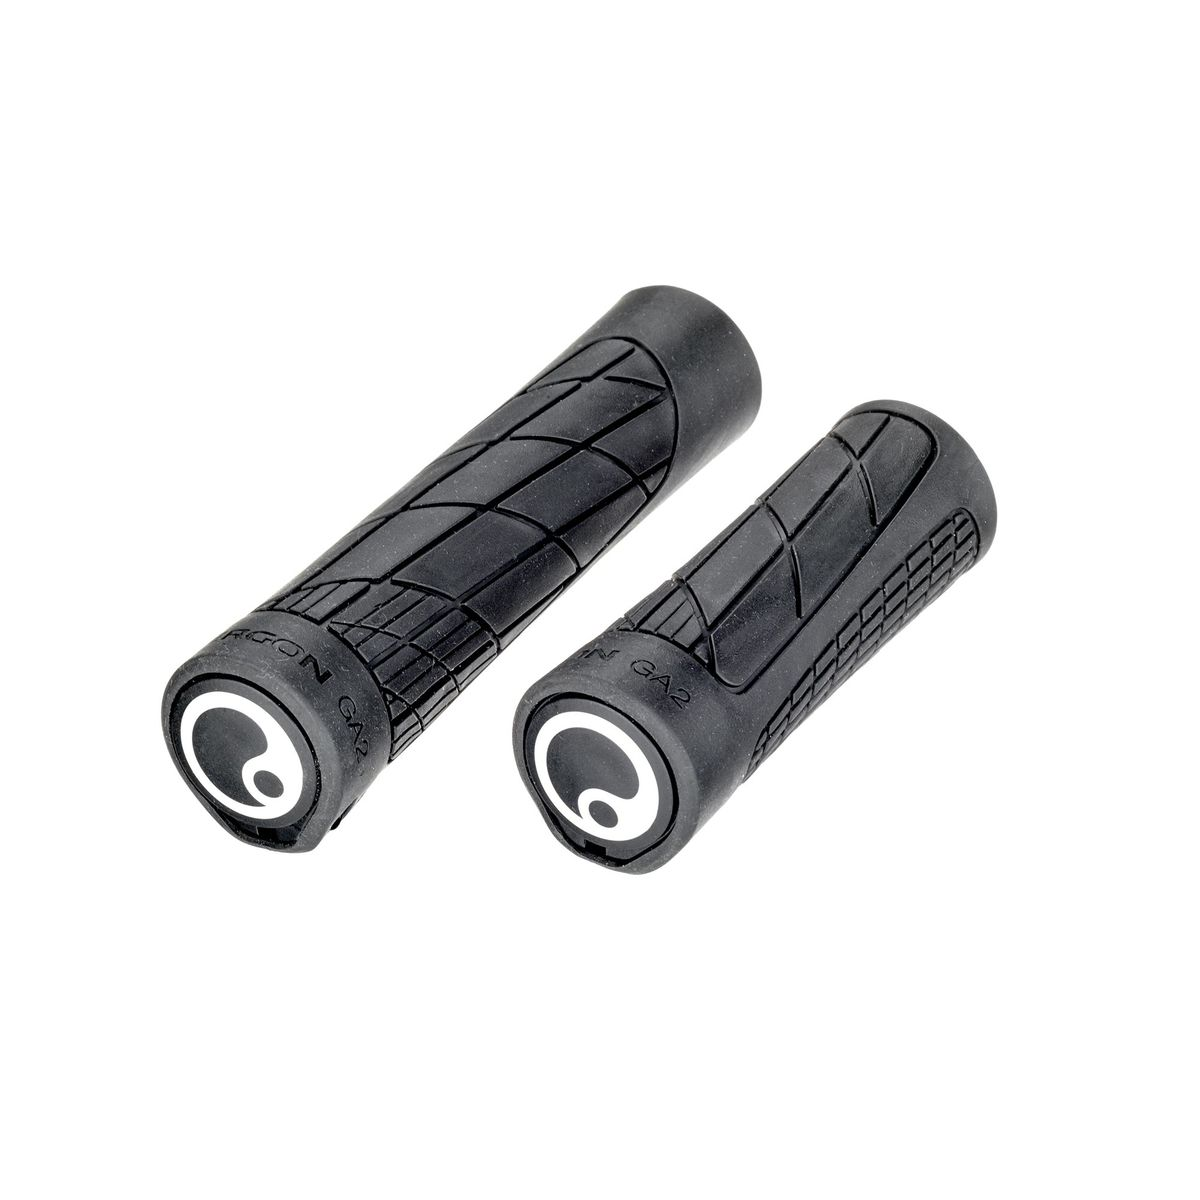 GA2 Single Twist Shift grips